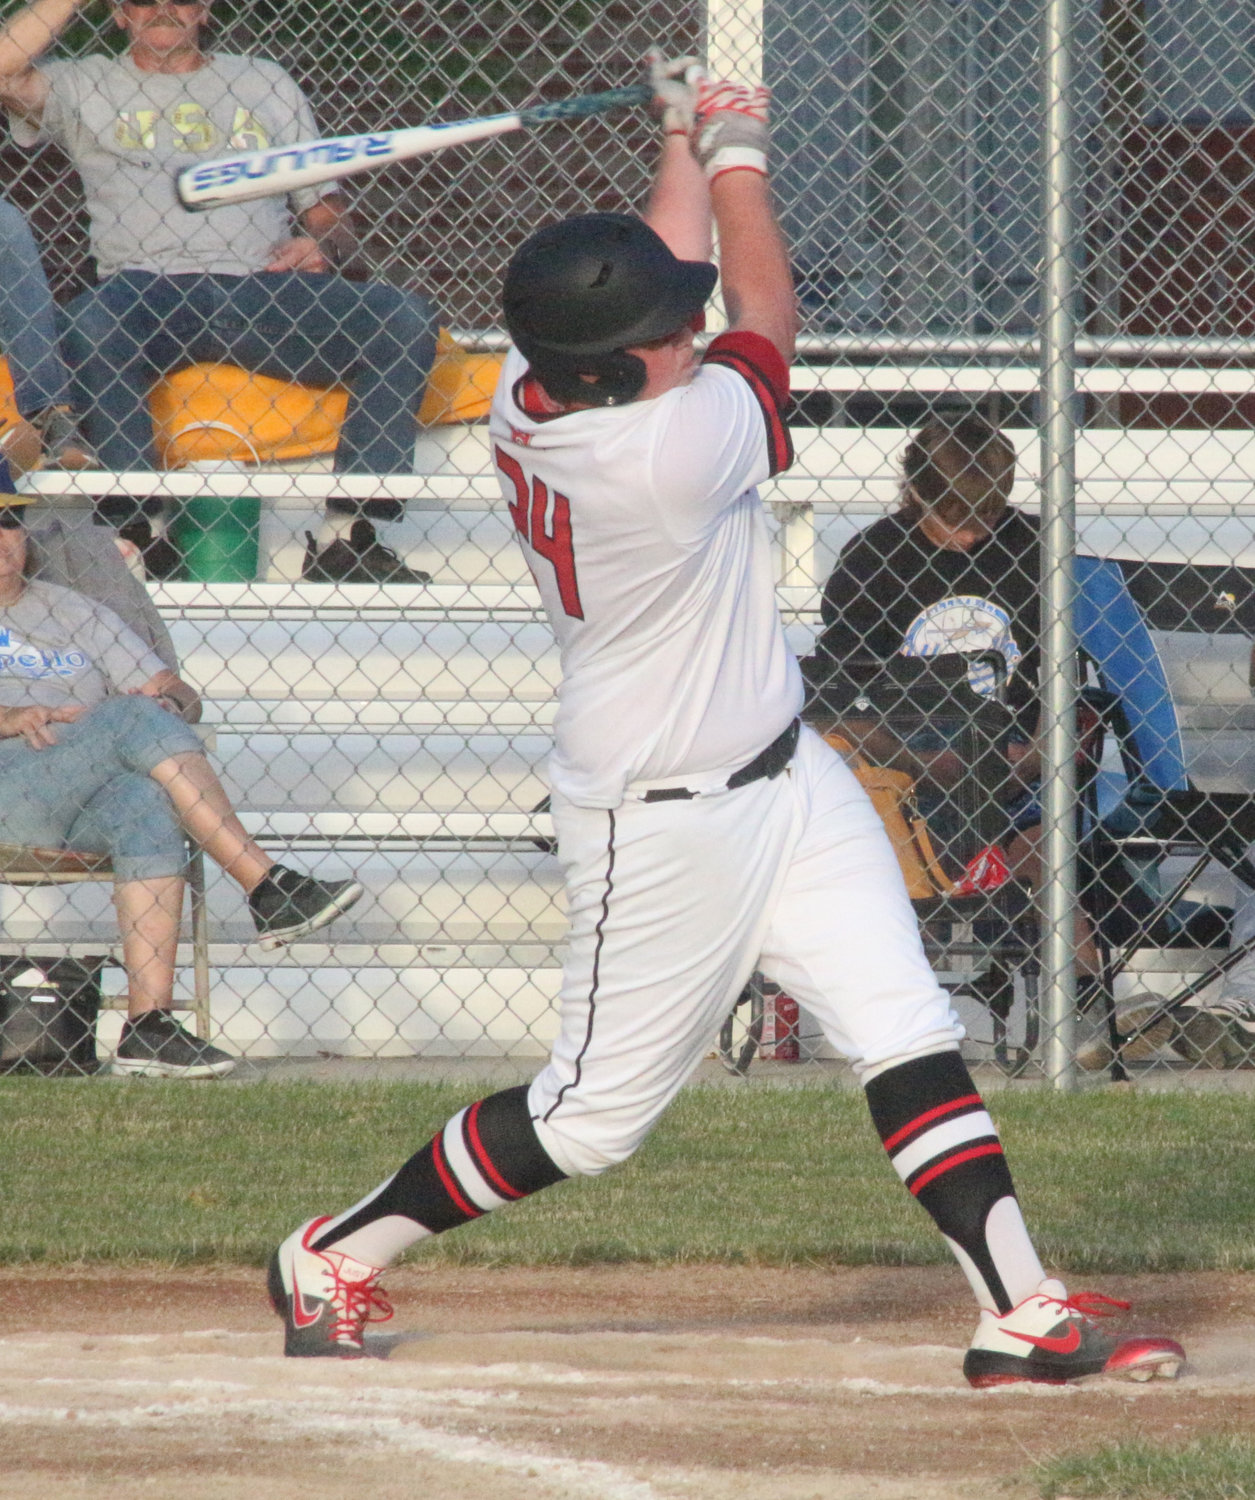 Highland's Chase Schultz takes a big swing on June 25.